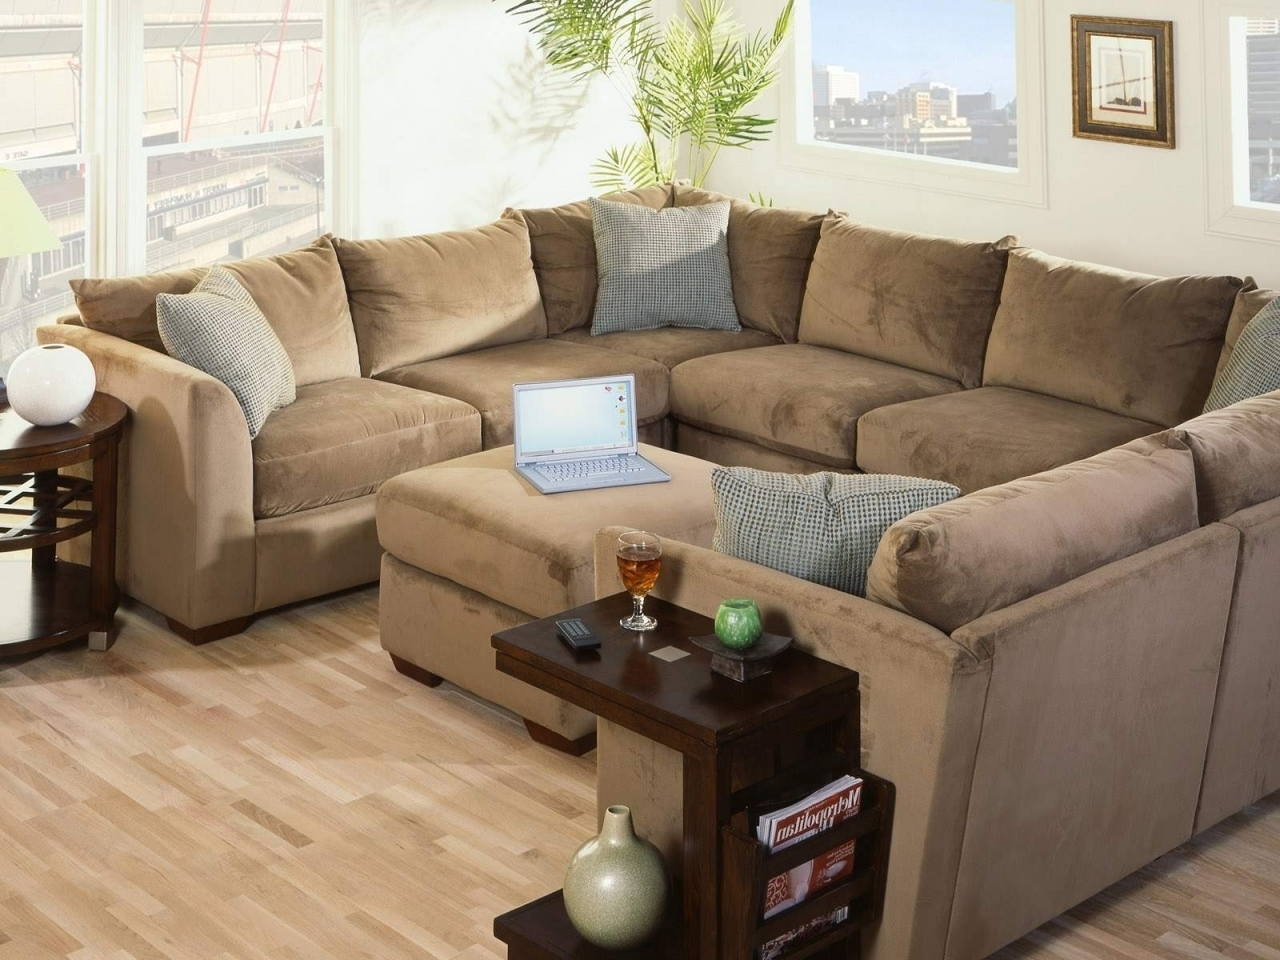 Big Lots Sofas With Regard To Favorite Amazing Sectional Couches Big Lots 77 On Contemporary Sofa (View 4 of 15)